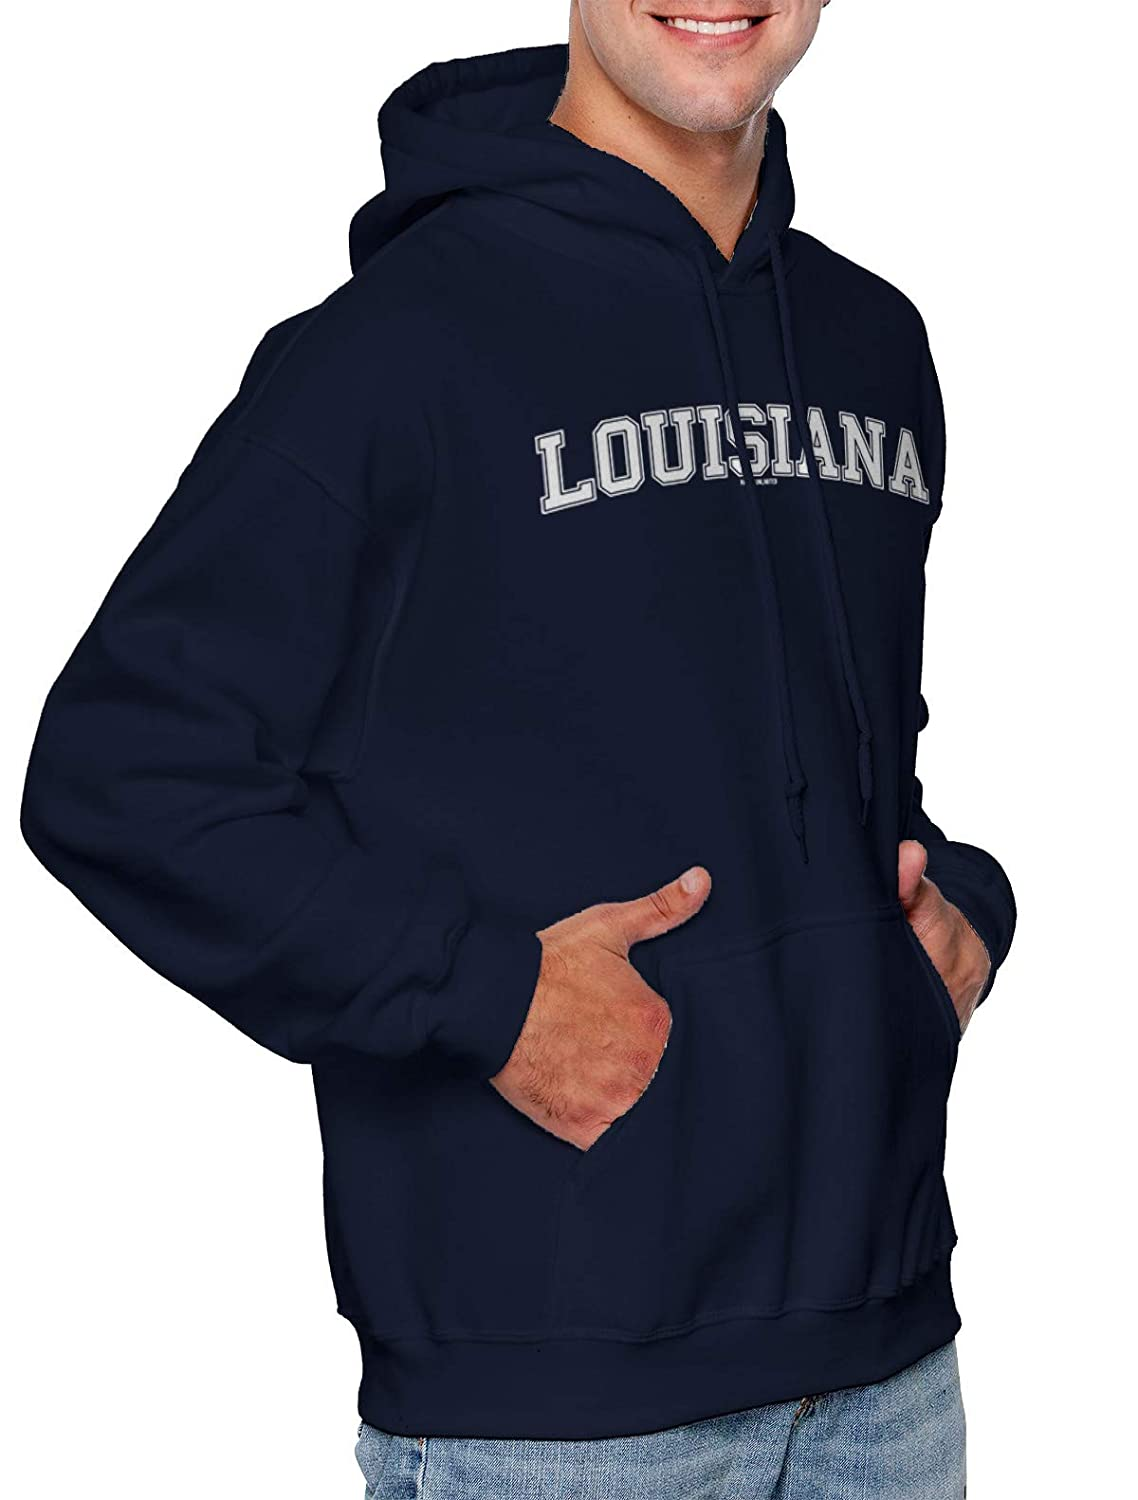 State School University Sports Unisex Hoodie Sweatshirt HAASE UNLIMITED Louisiana